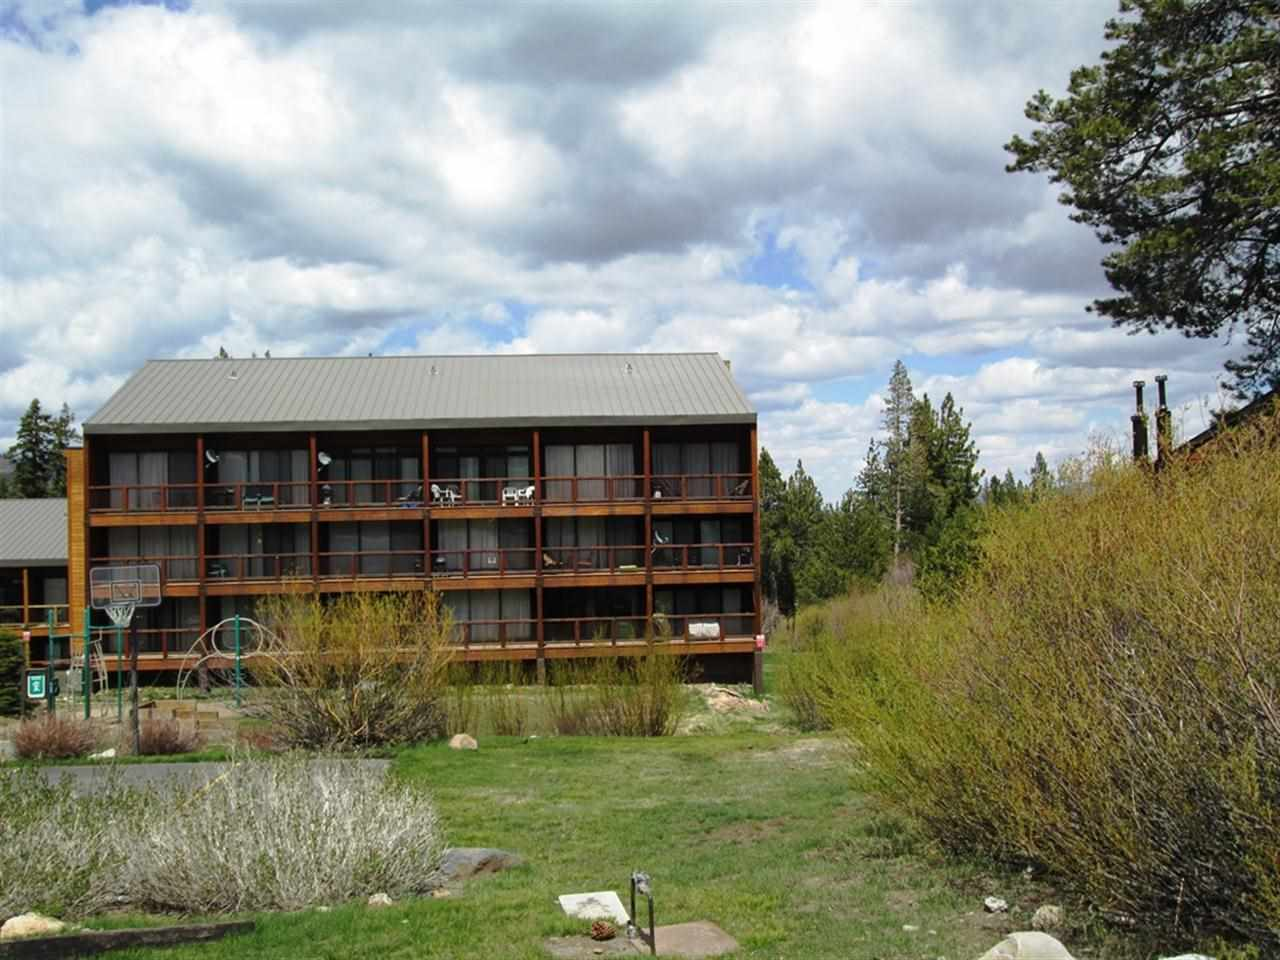 Additional photo for property listing at 11591 Snowpeak Way 11591 Snowpeak Way Truckee, California 96161 Estados Unidos